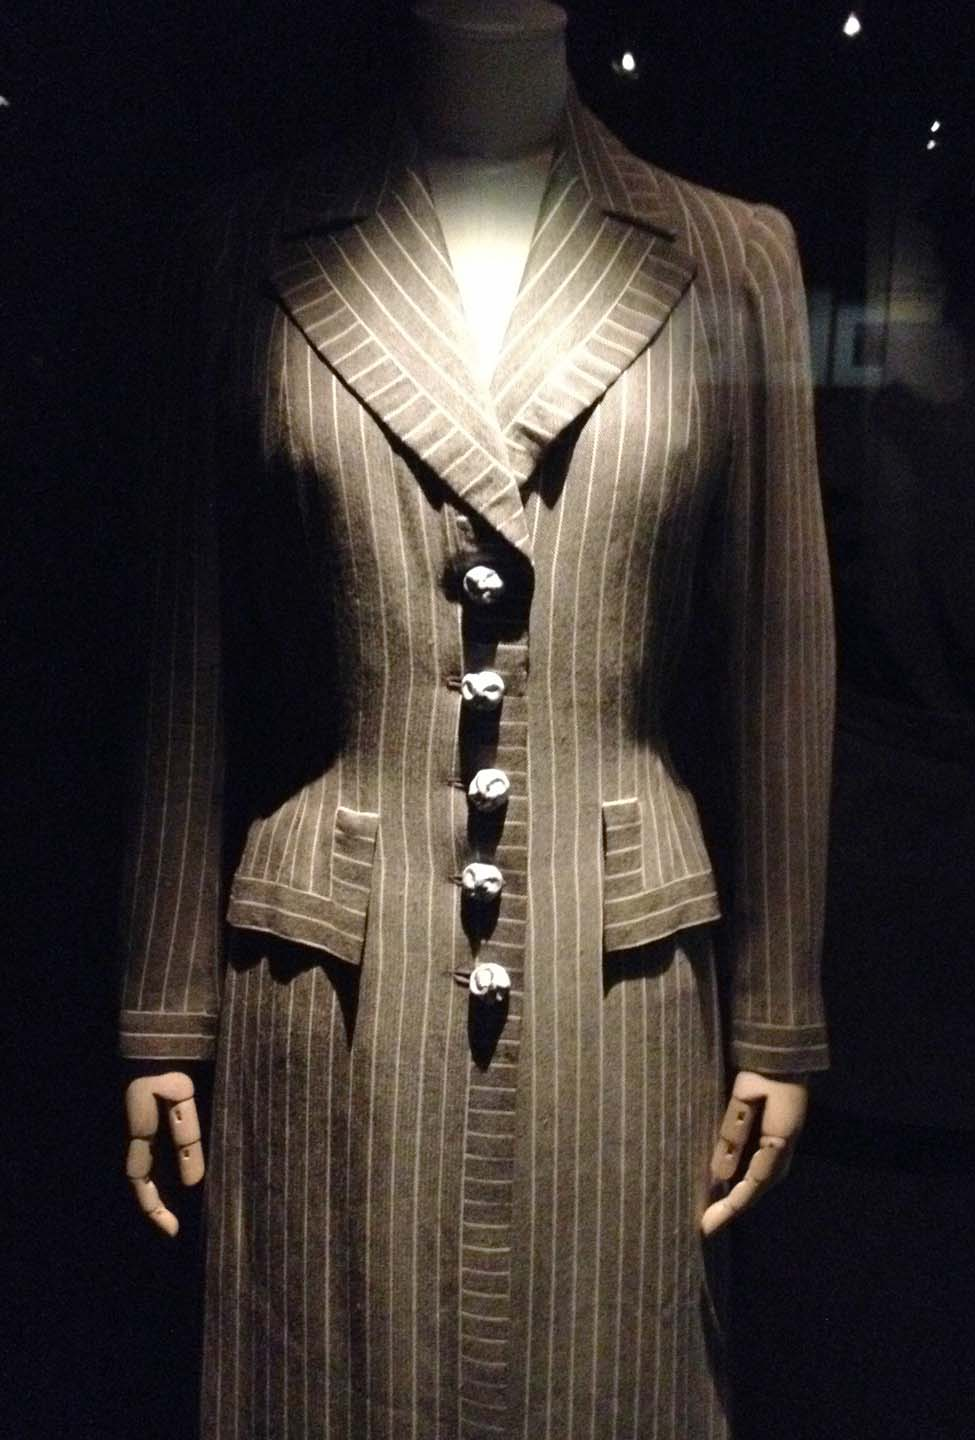 Sophisticated 20th Century pinstripe suit dress